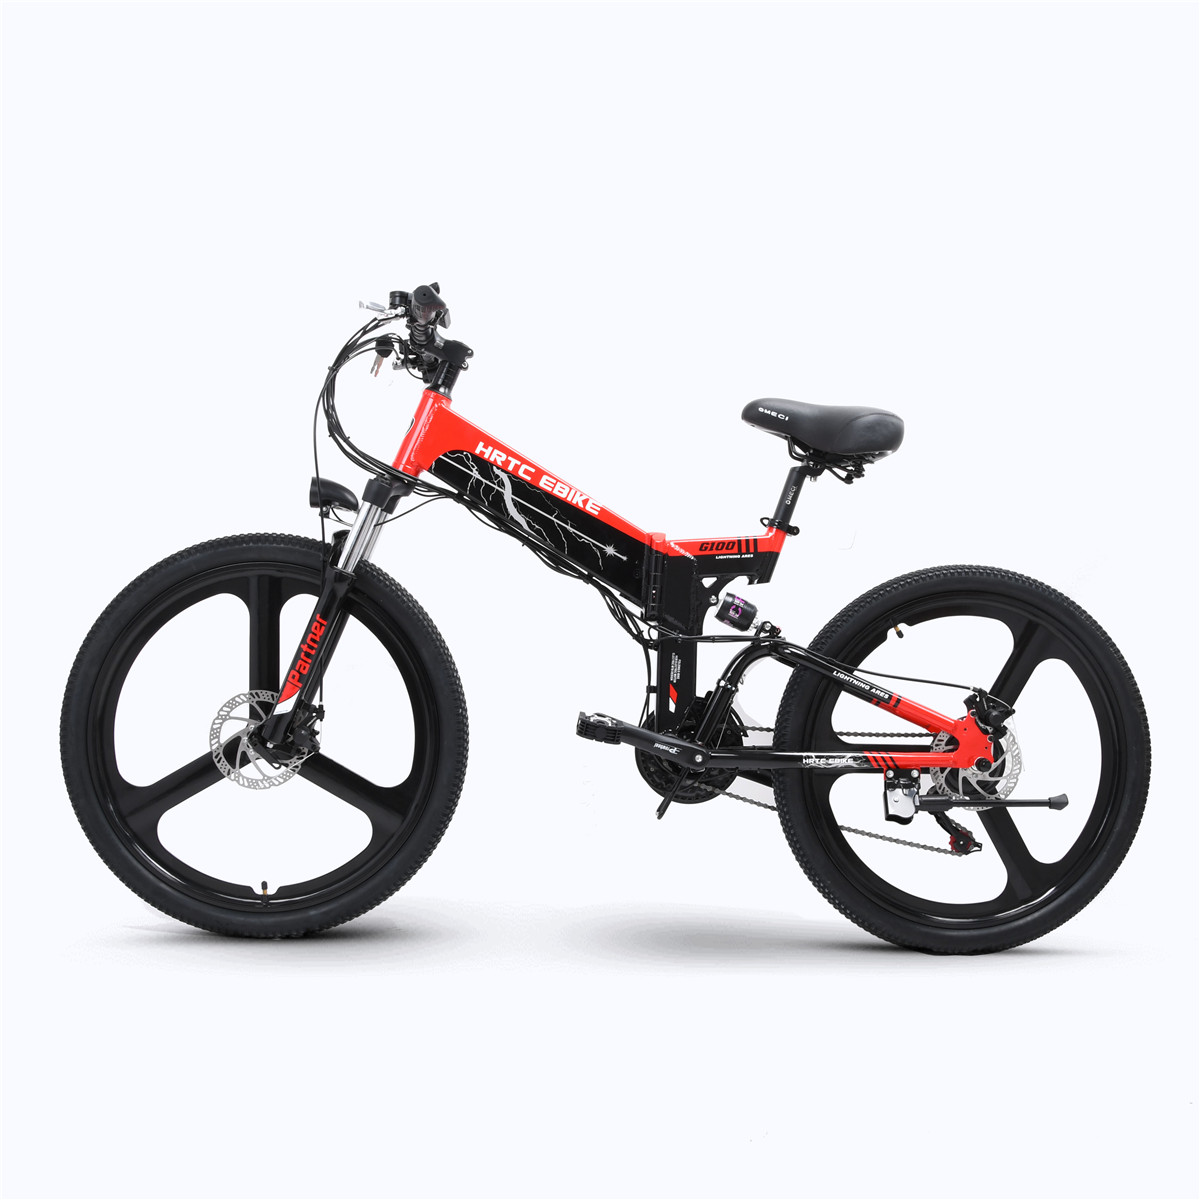 26inch electric mountain bike 48V hidden lithium battery 400w rear wheel motor fold ebike Soft tail suspension electric bike